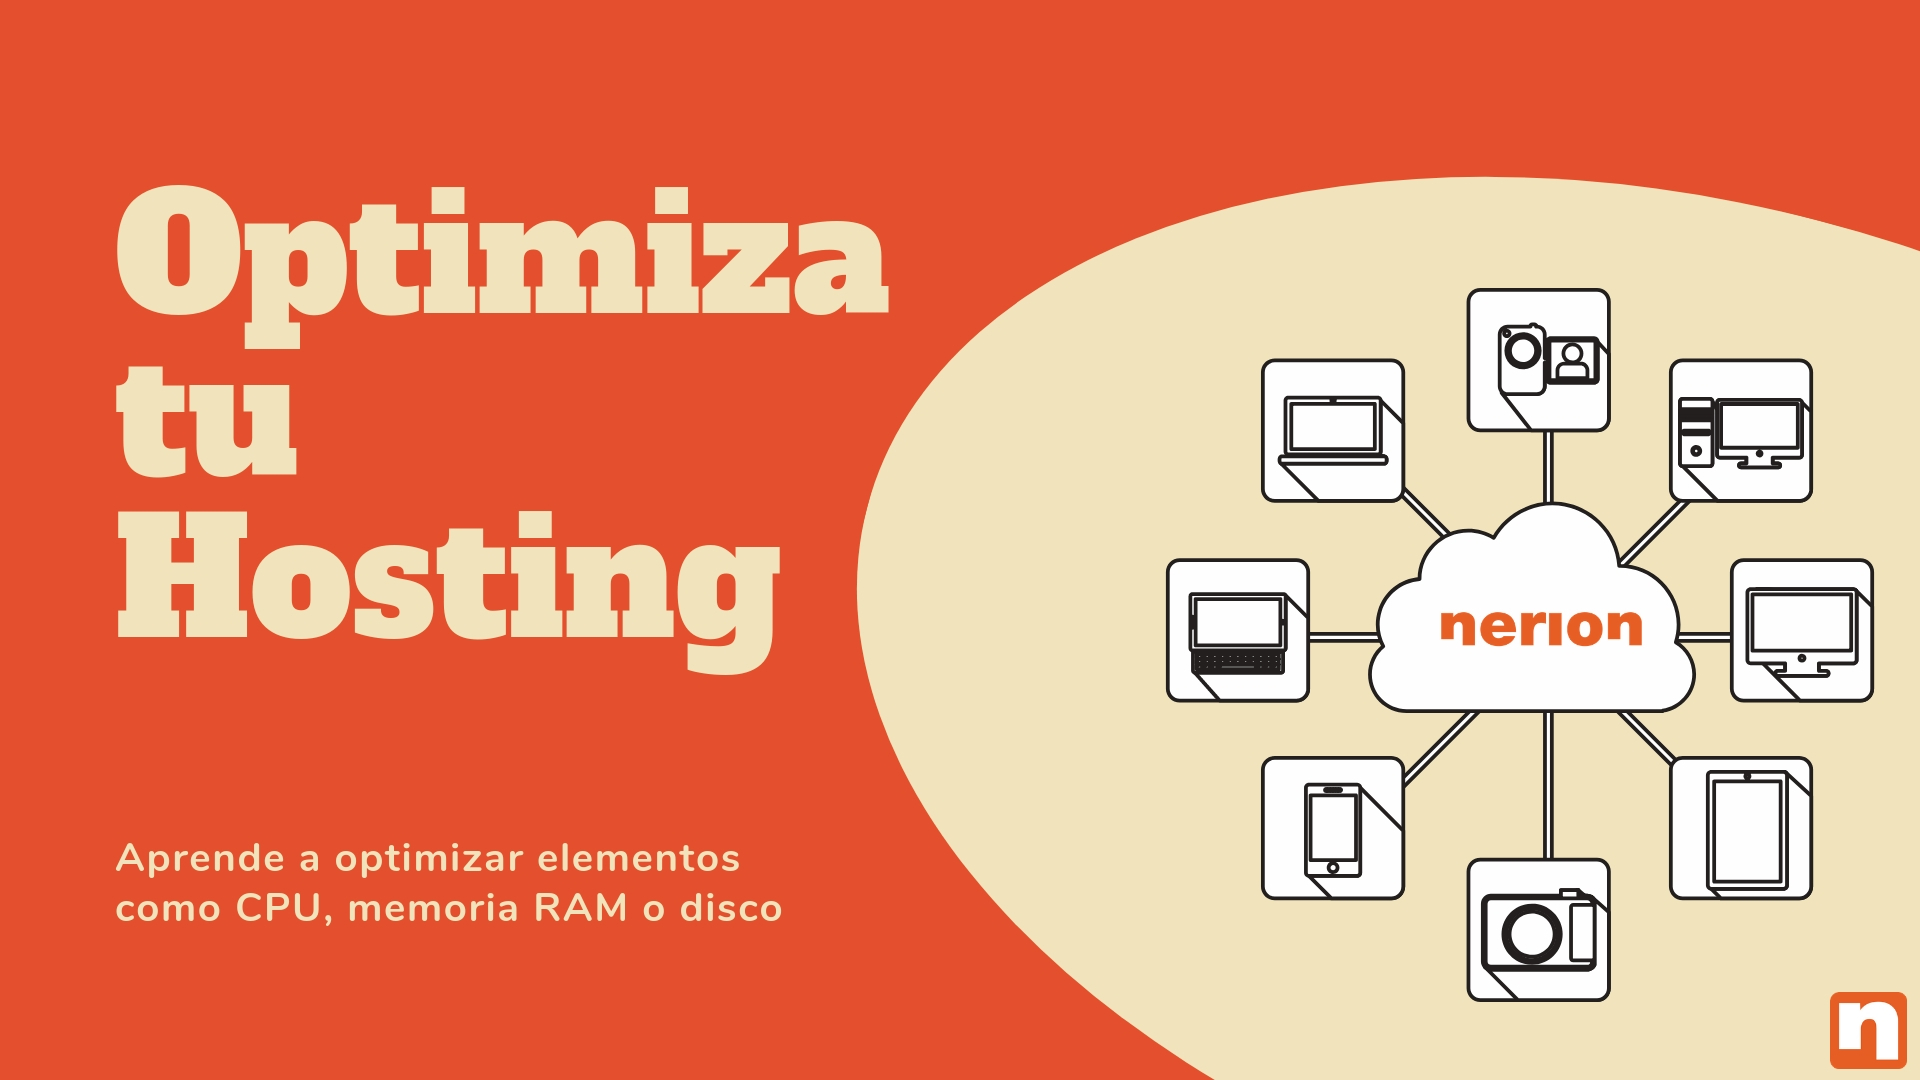 optimiza el disco, memoria ram o cpu de tu hosting